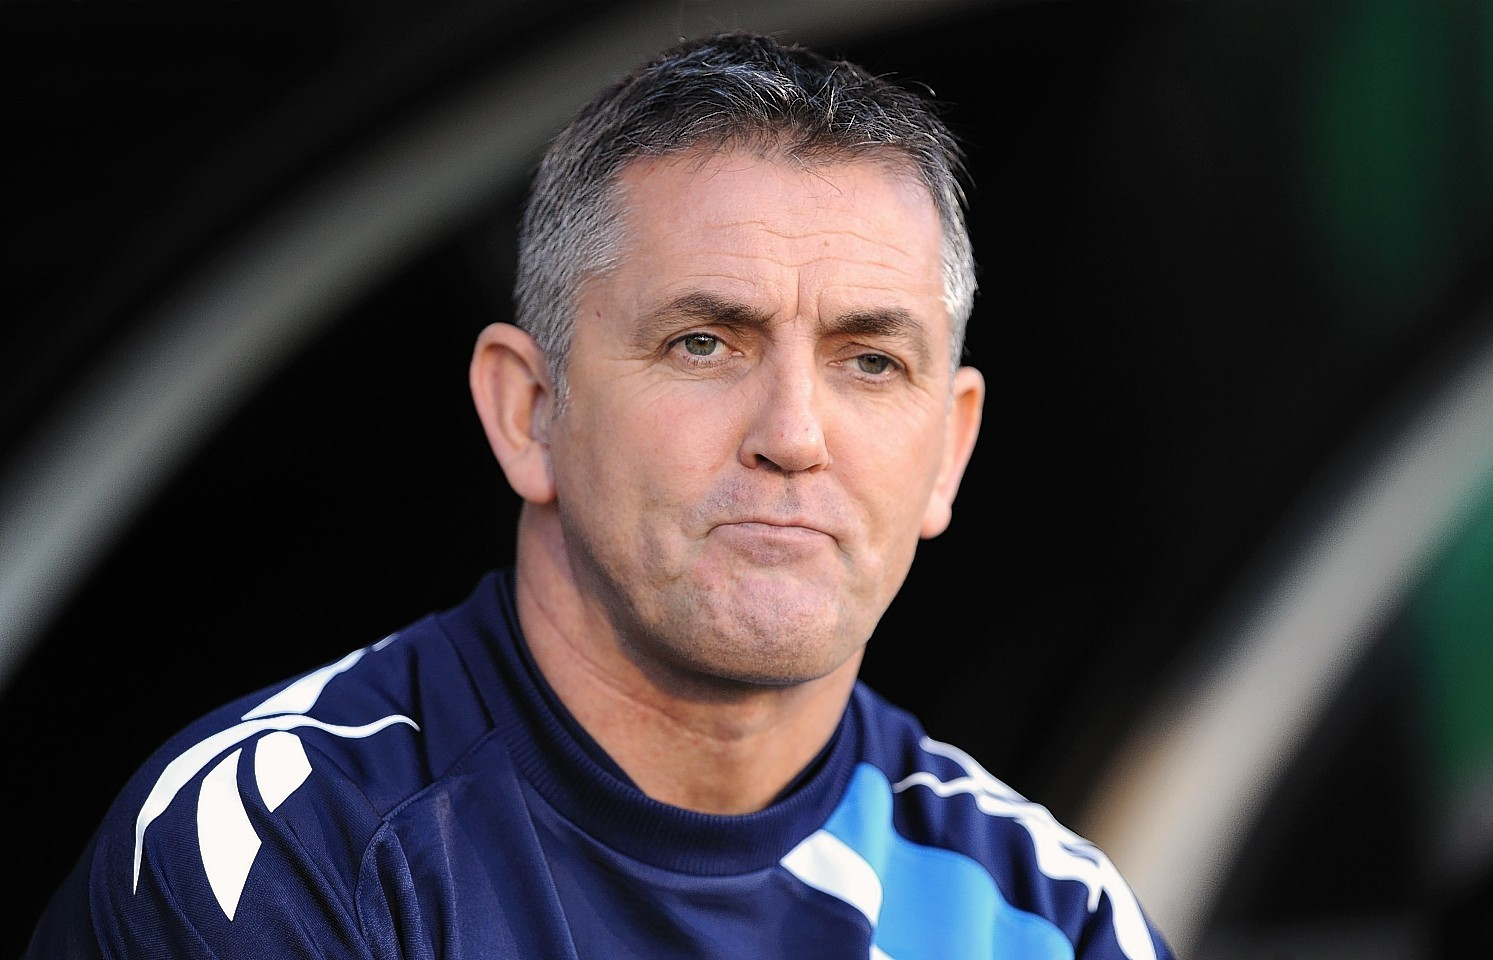 Owen Coyle will become new Ross County manager